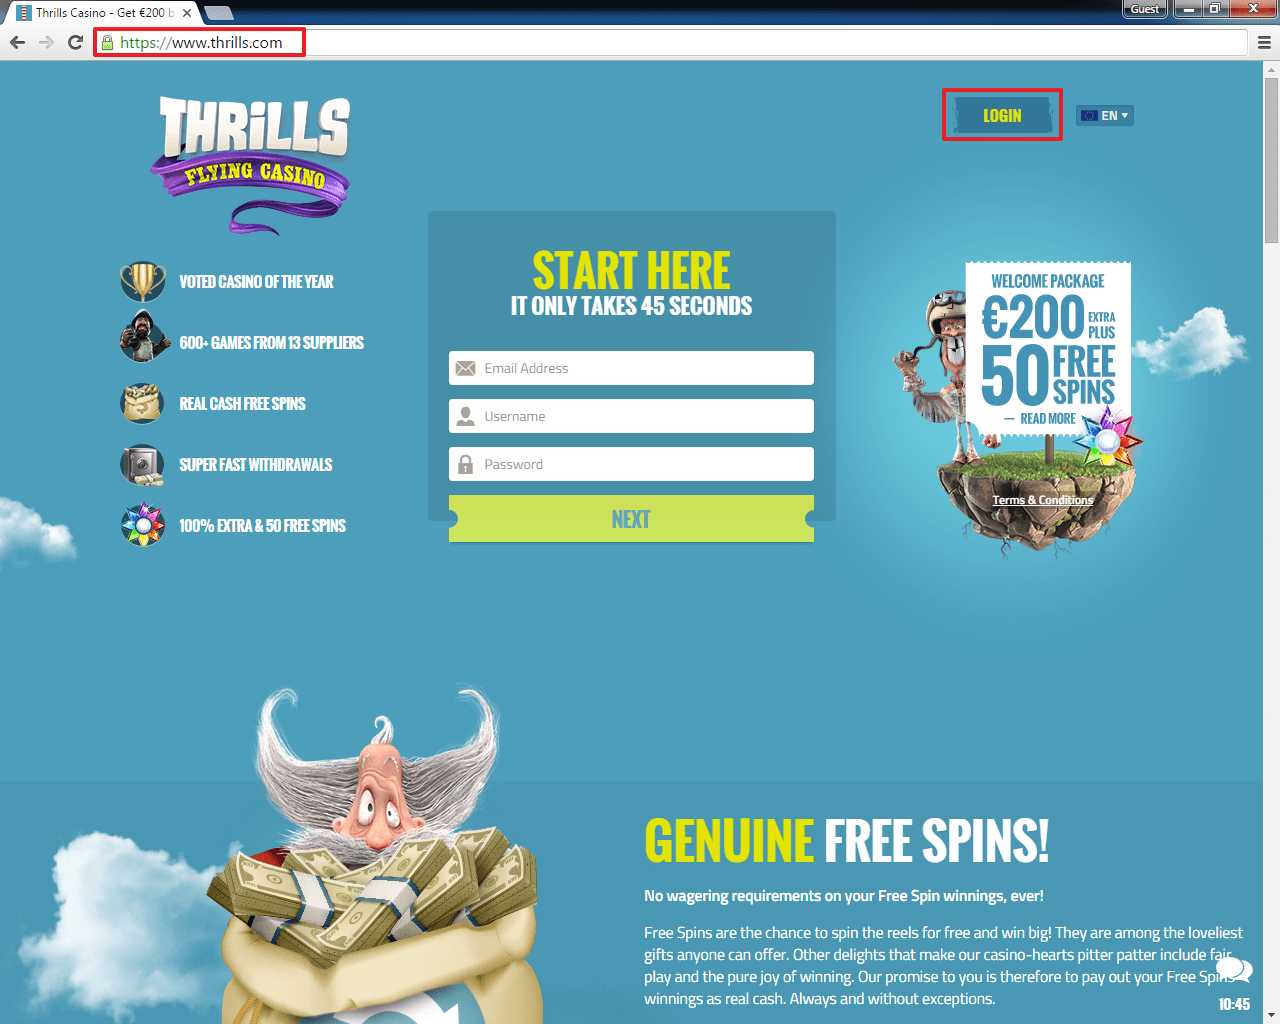 Thrills casino login